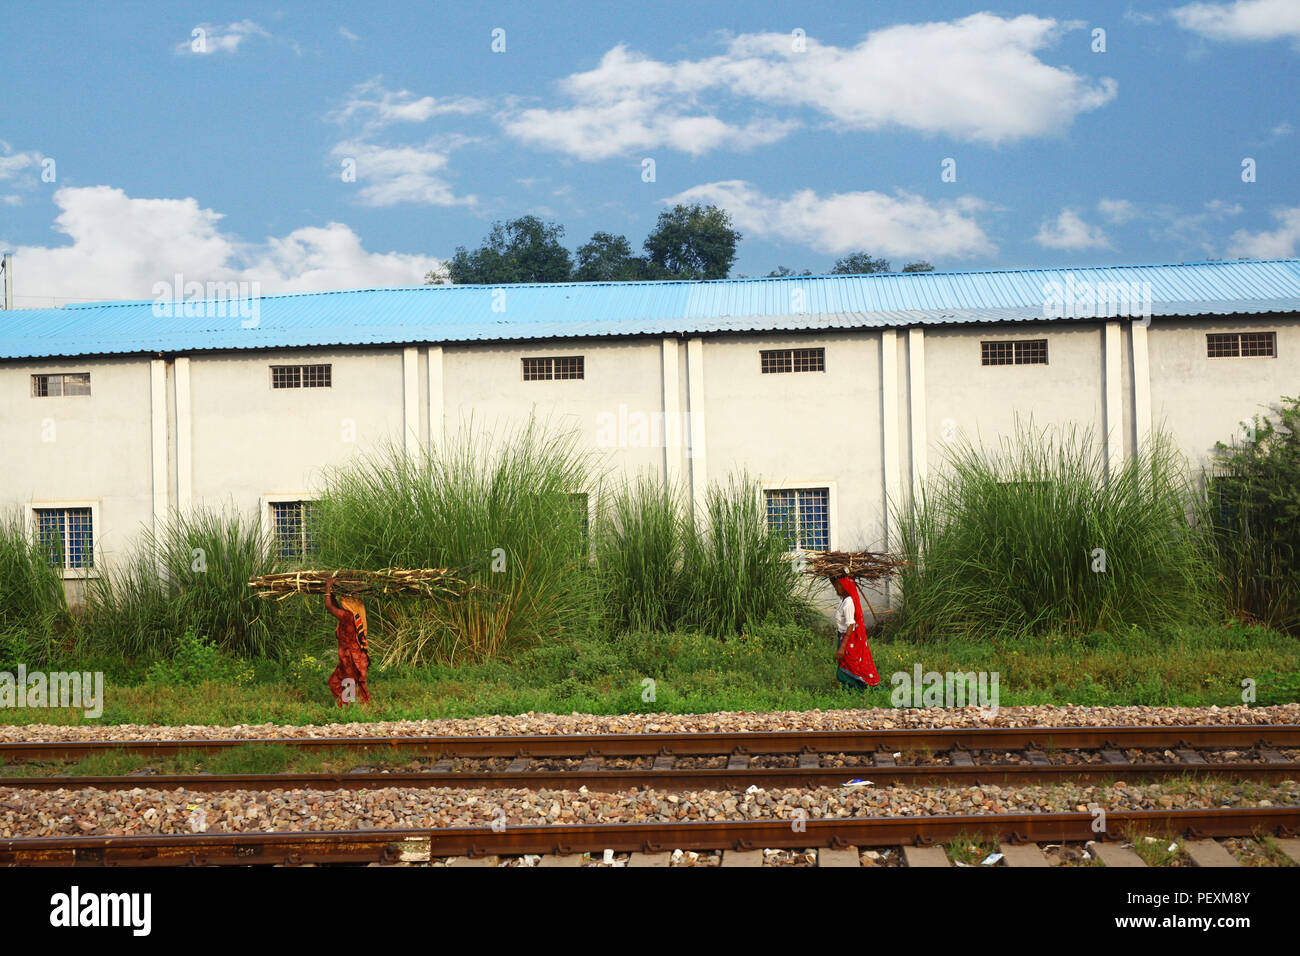 Two Indian women carrying wood walking along railroad tracks, Jaipur, Rajasthan, India - Stock Image